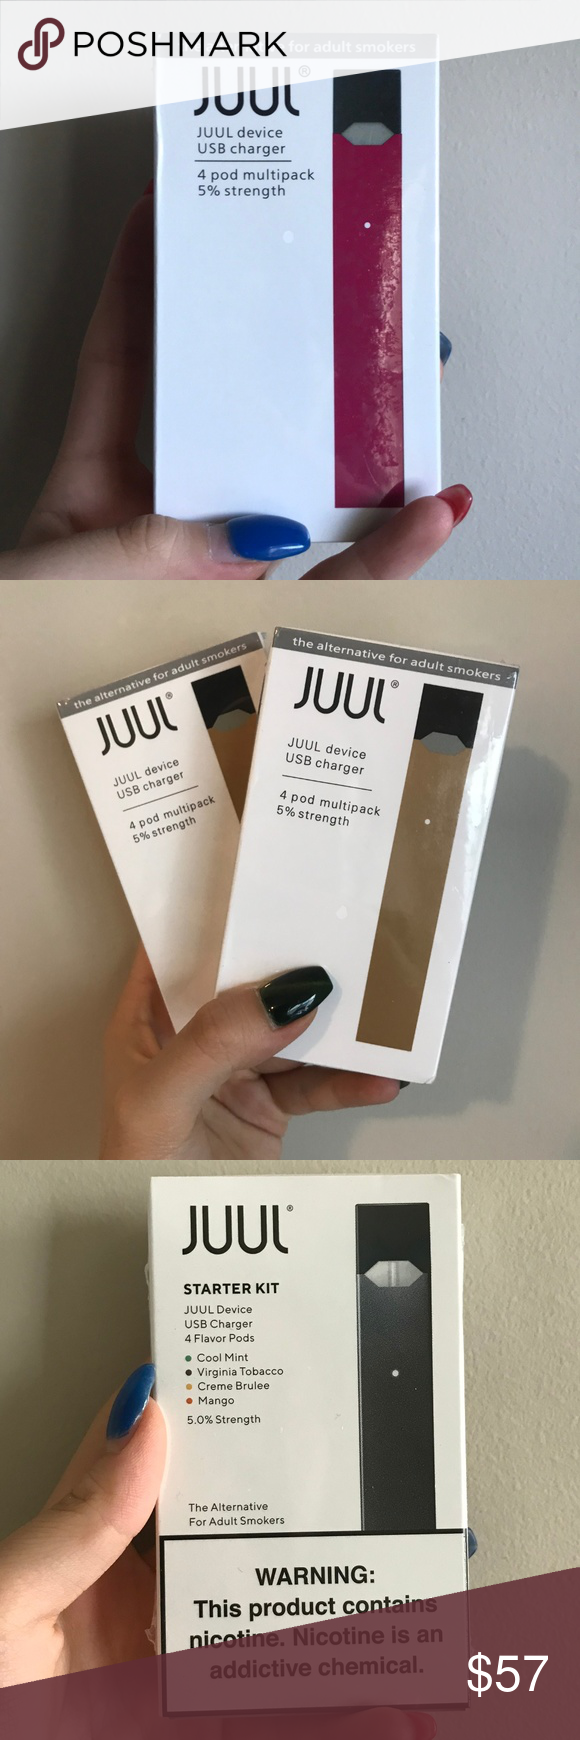 Juul Colors